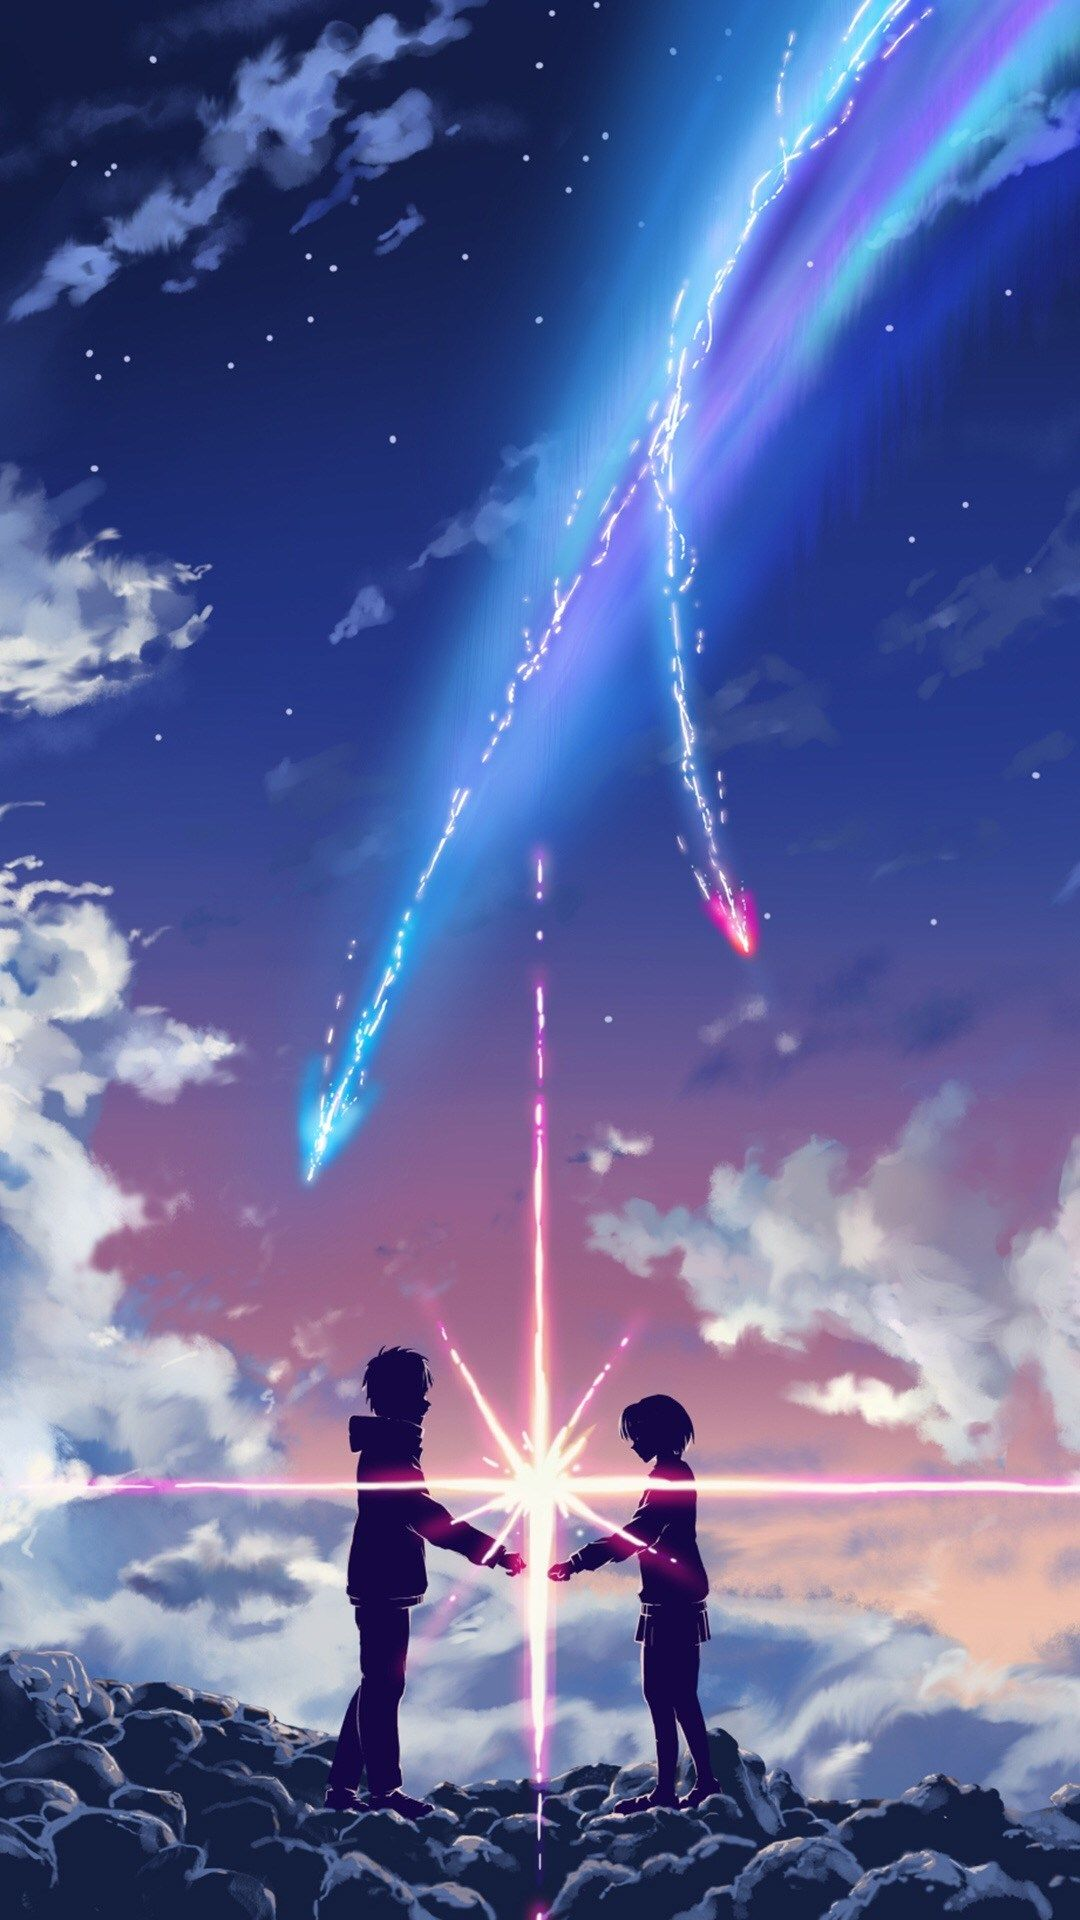 Your Name Movie Touching Through Space Poster Iphone  Wallpaper